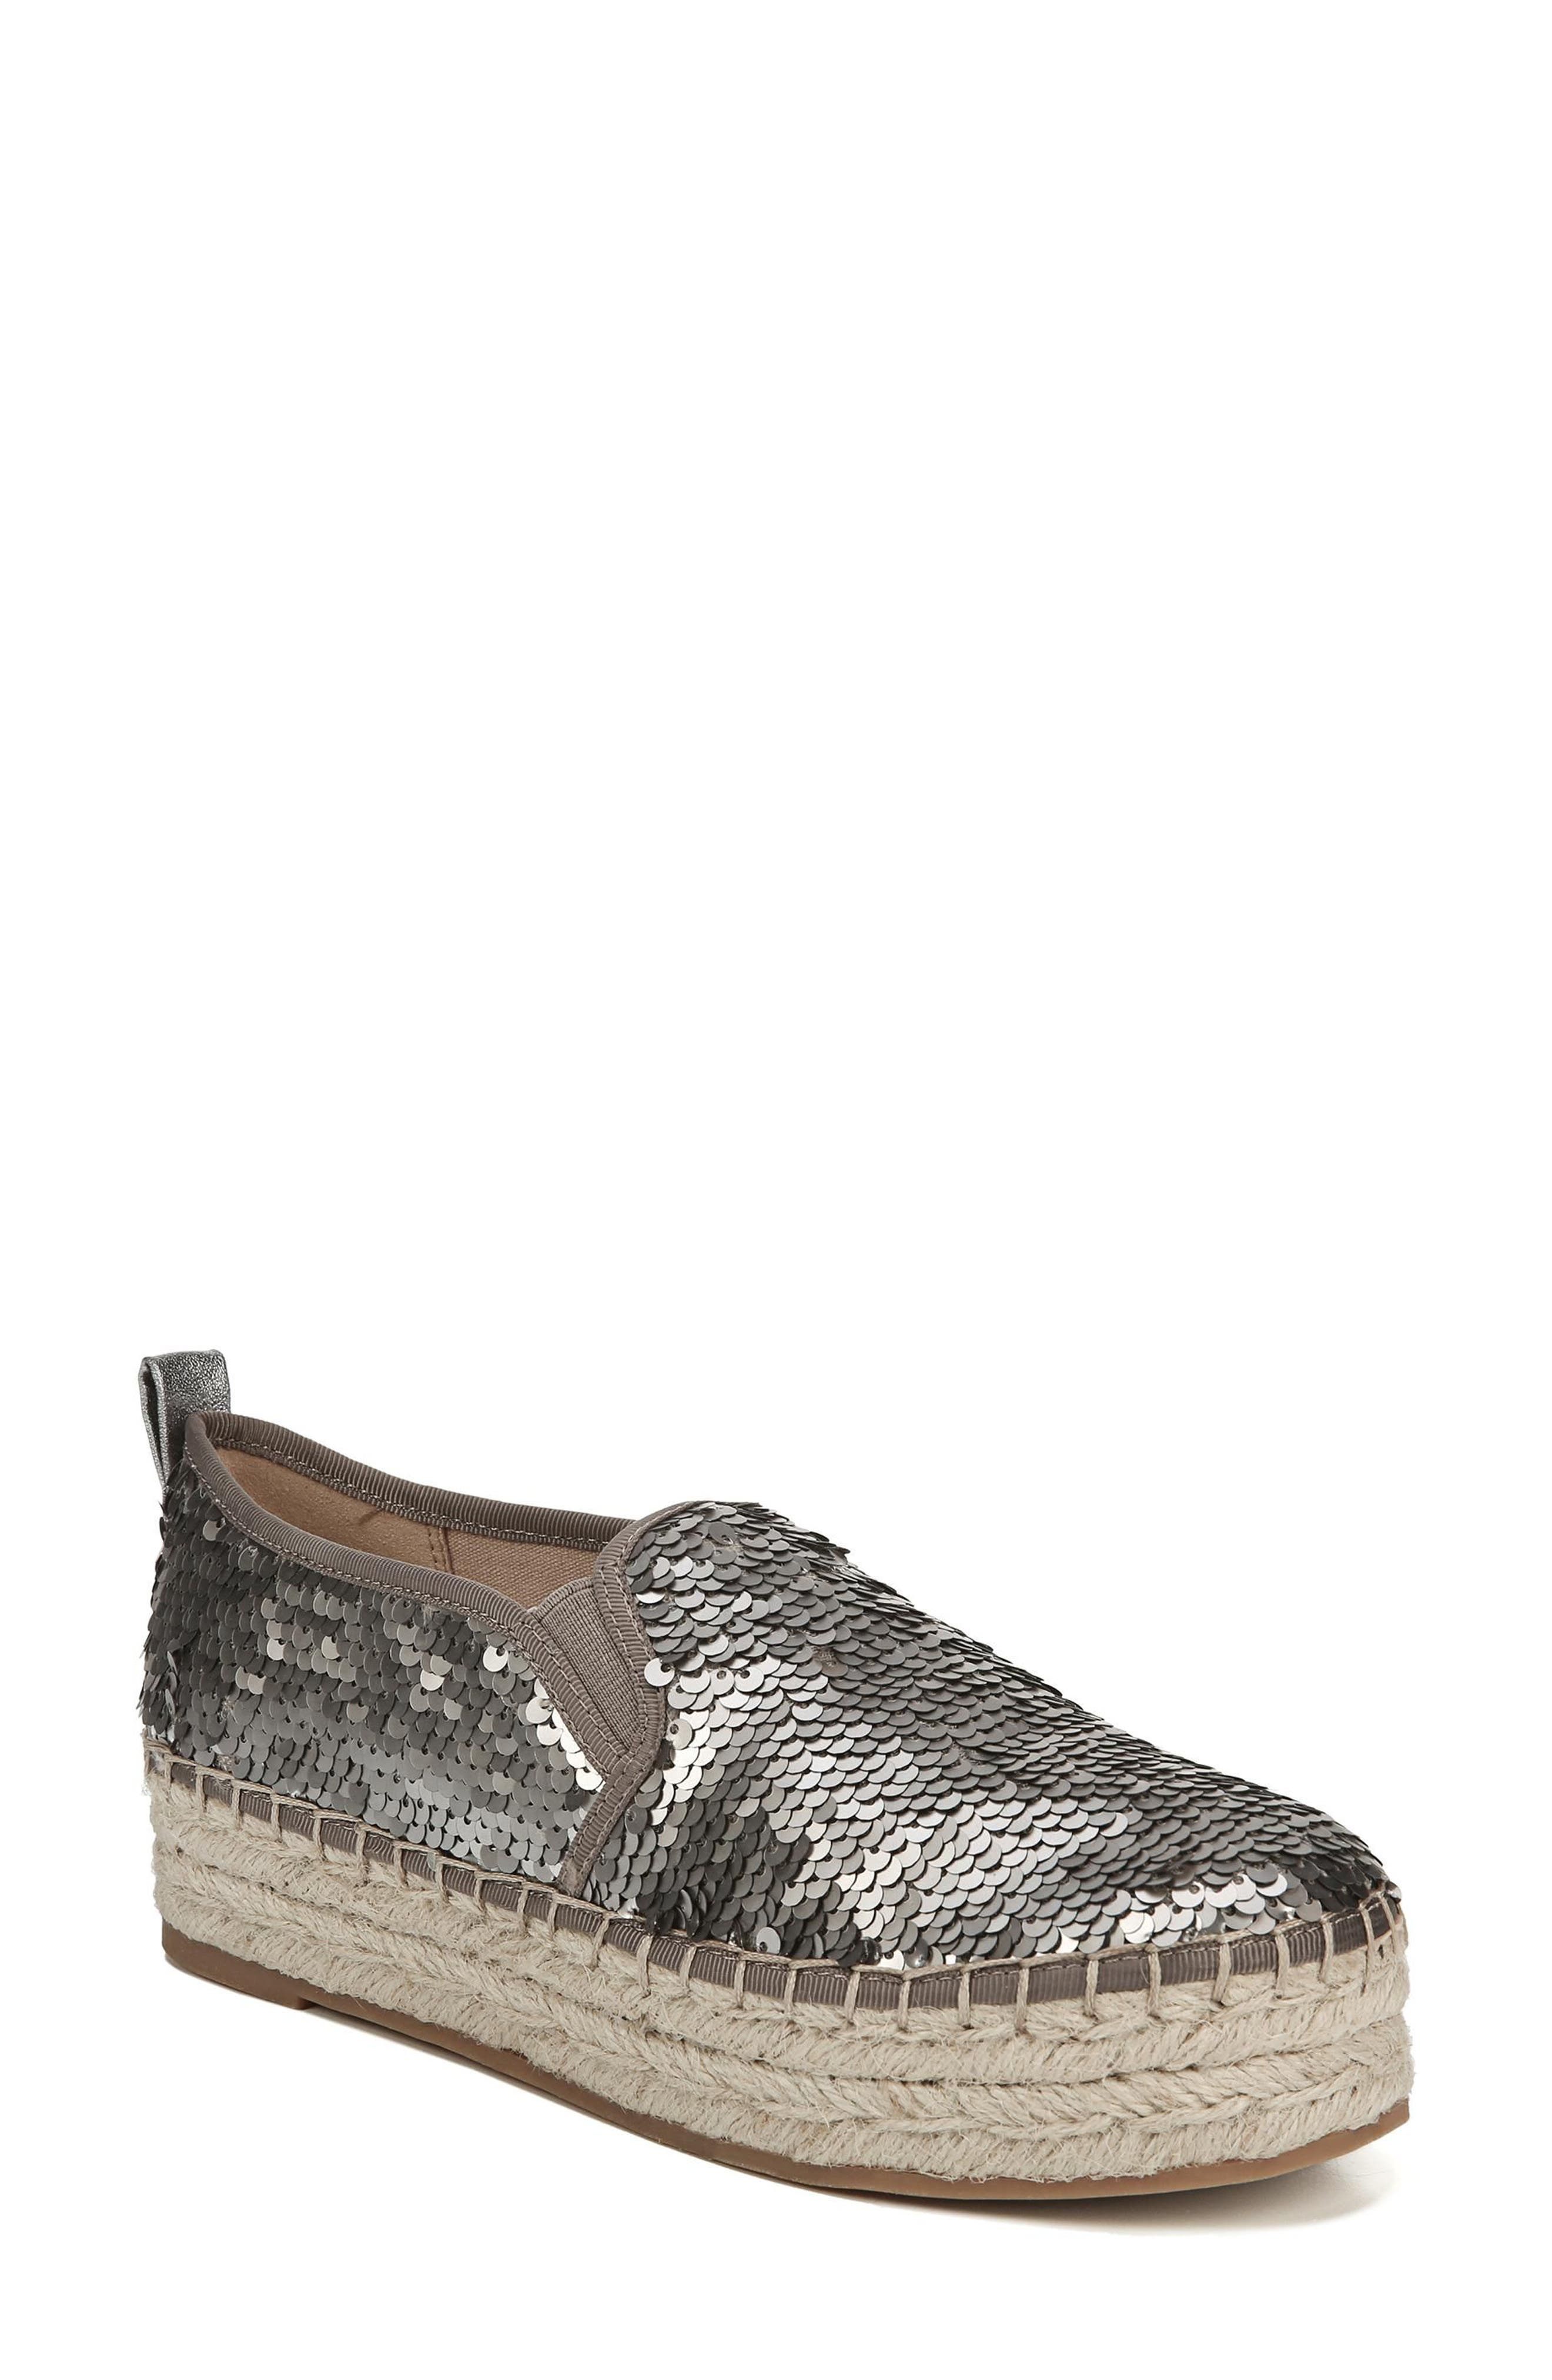 'Carrin' Espadrille Flat,                         Main,                         color, PEWTER SEQUINS